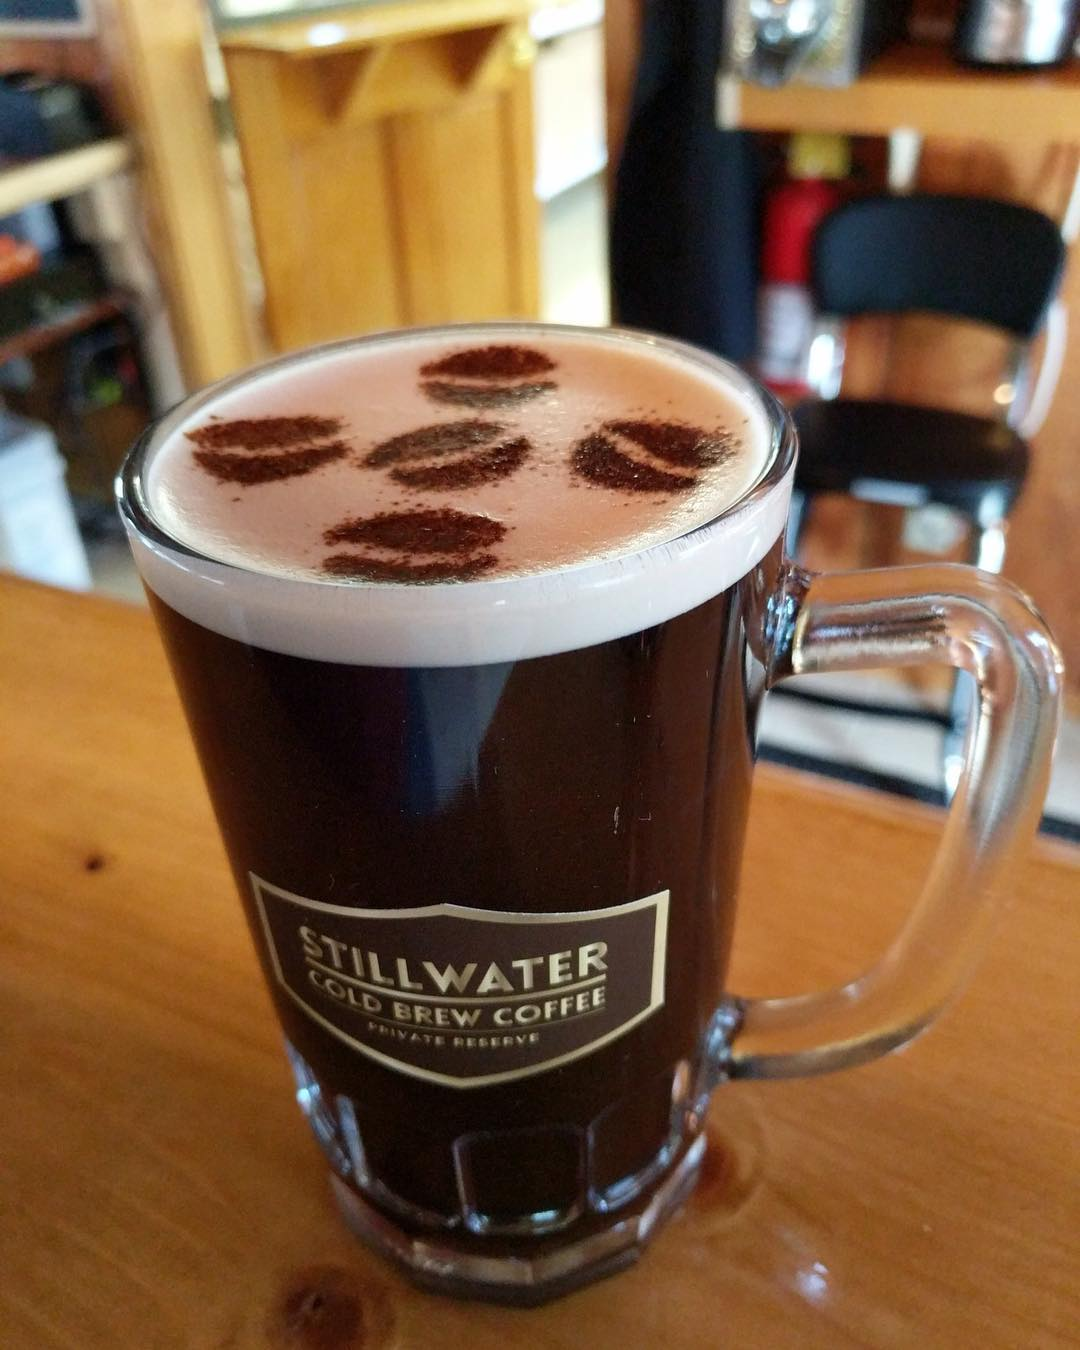 Gatlinburg Restaurants - Stillwater Cold Brew Coffee - Original Photo